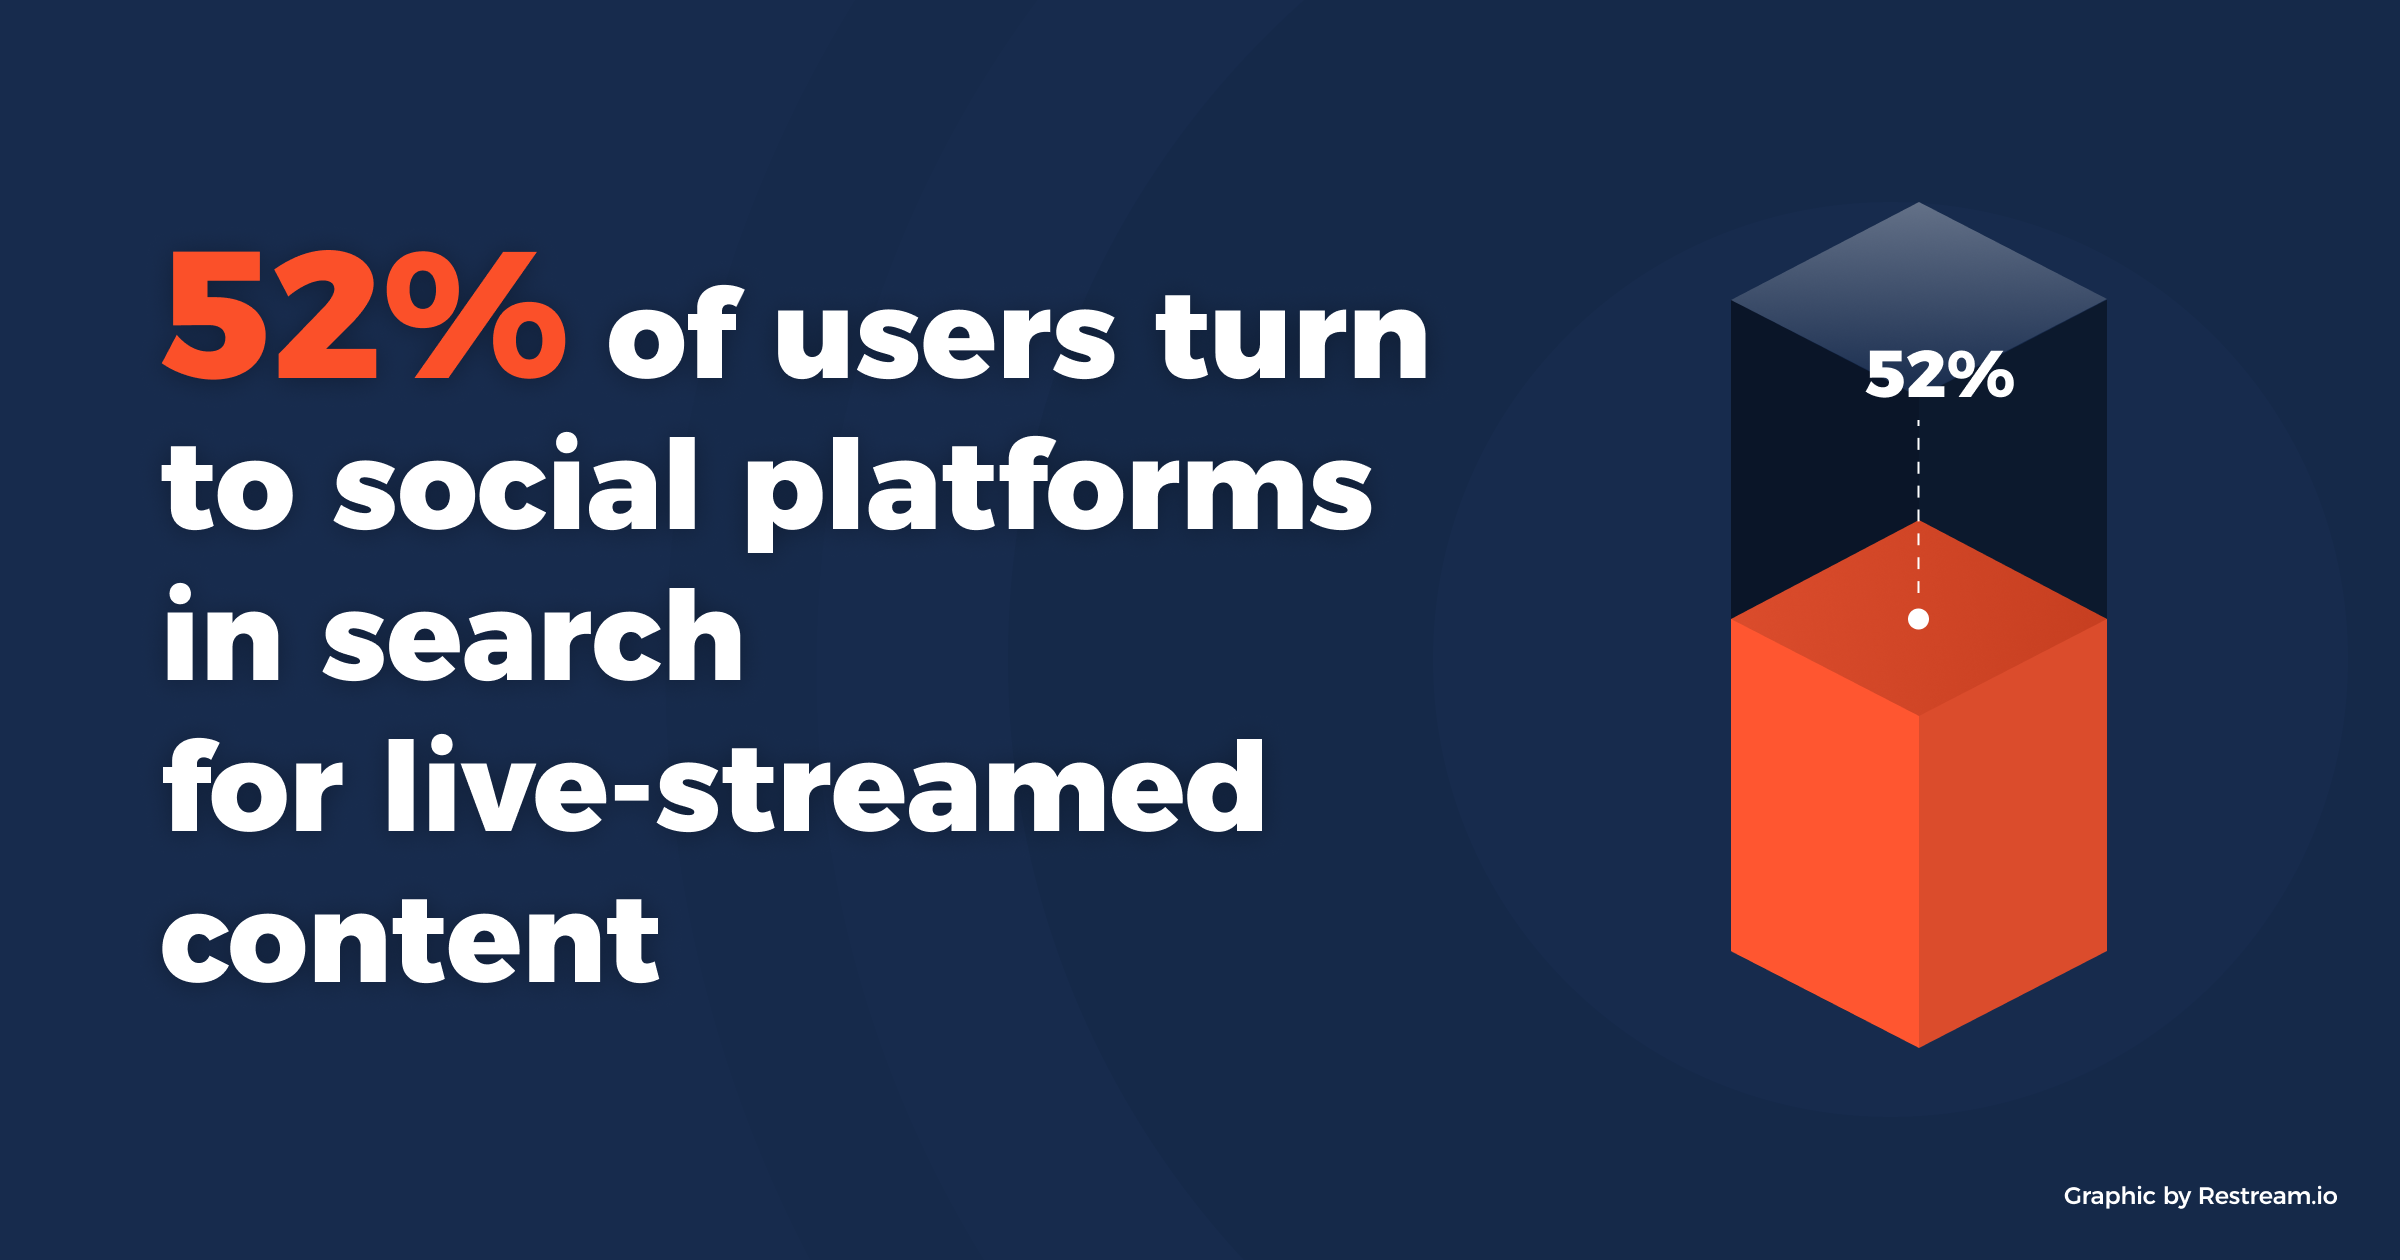 52% of users turn to social platforms in search for live-streamed content